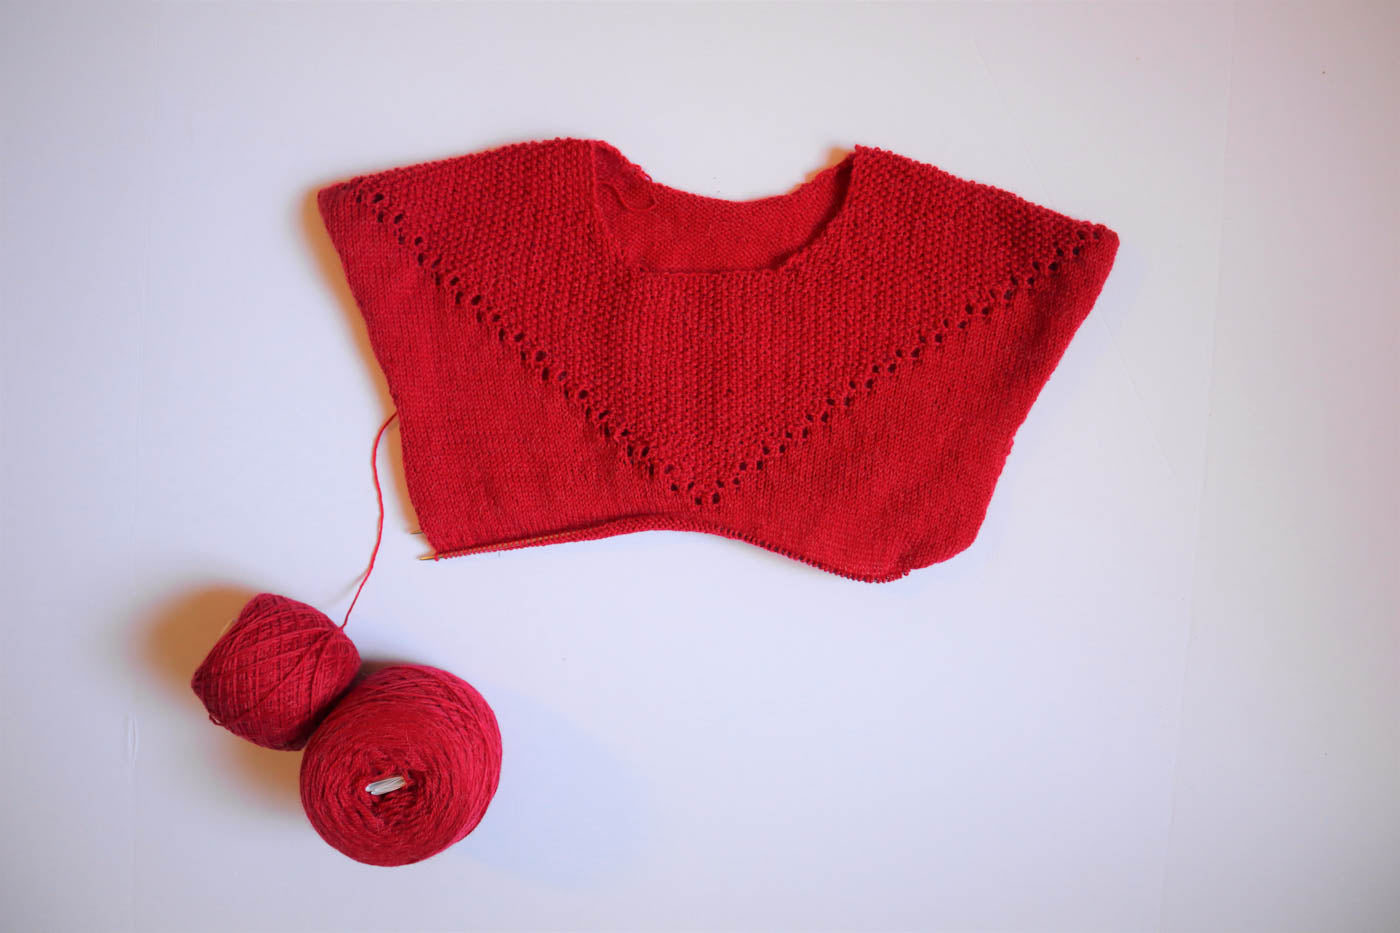 A red sweater being knitted